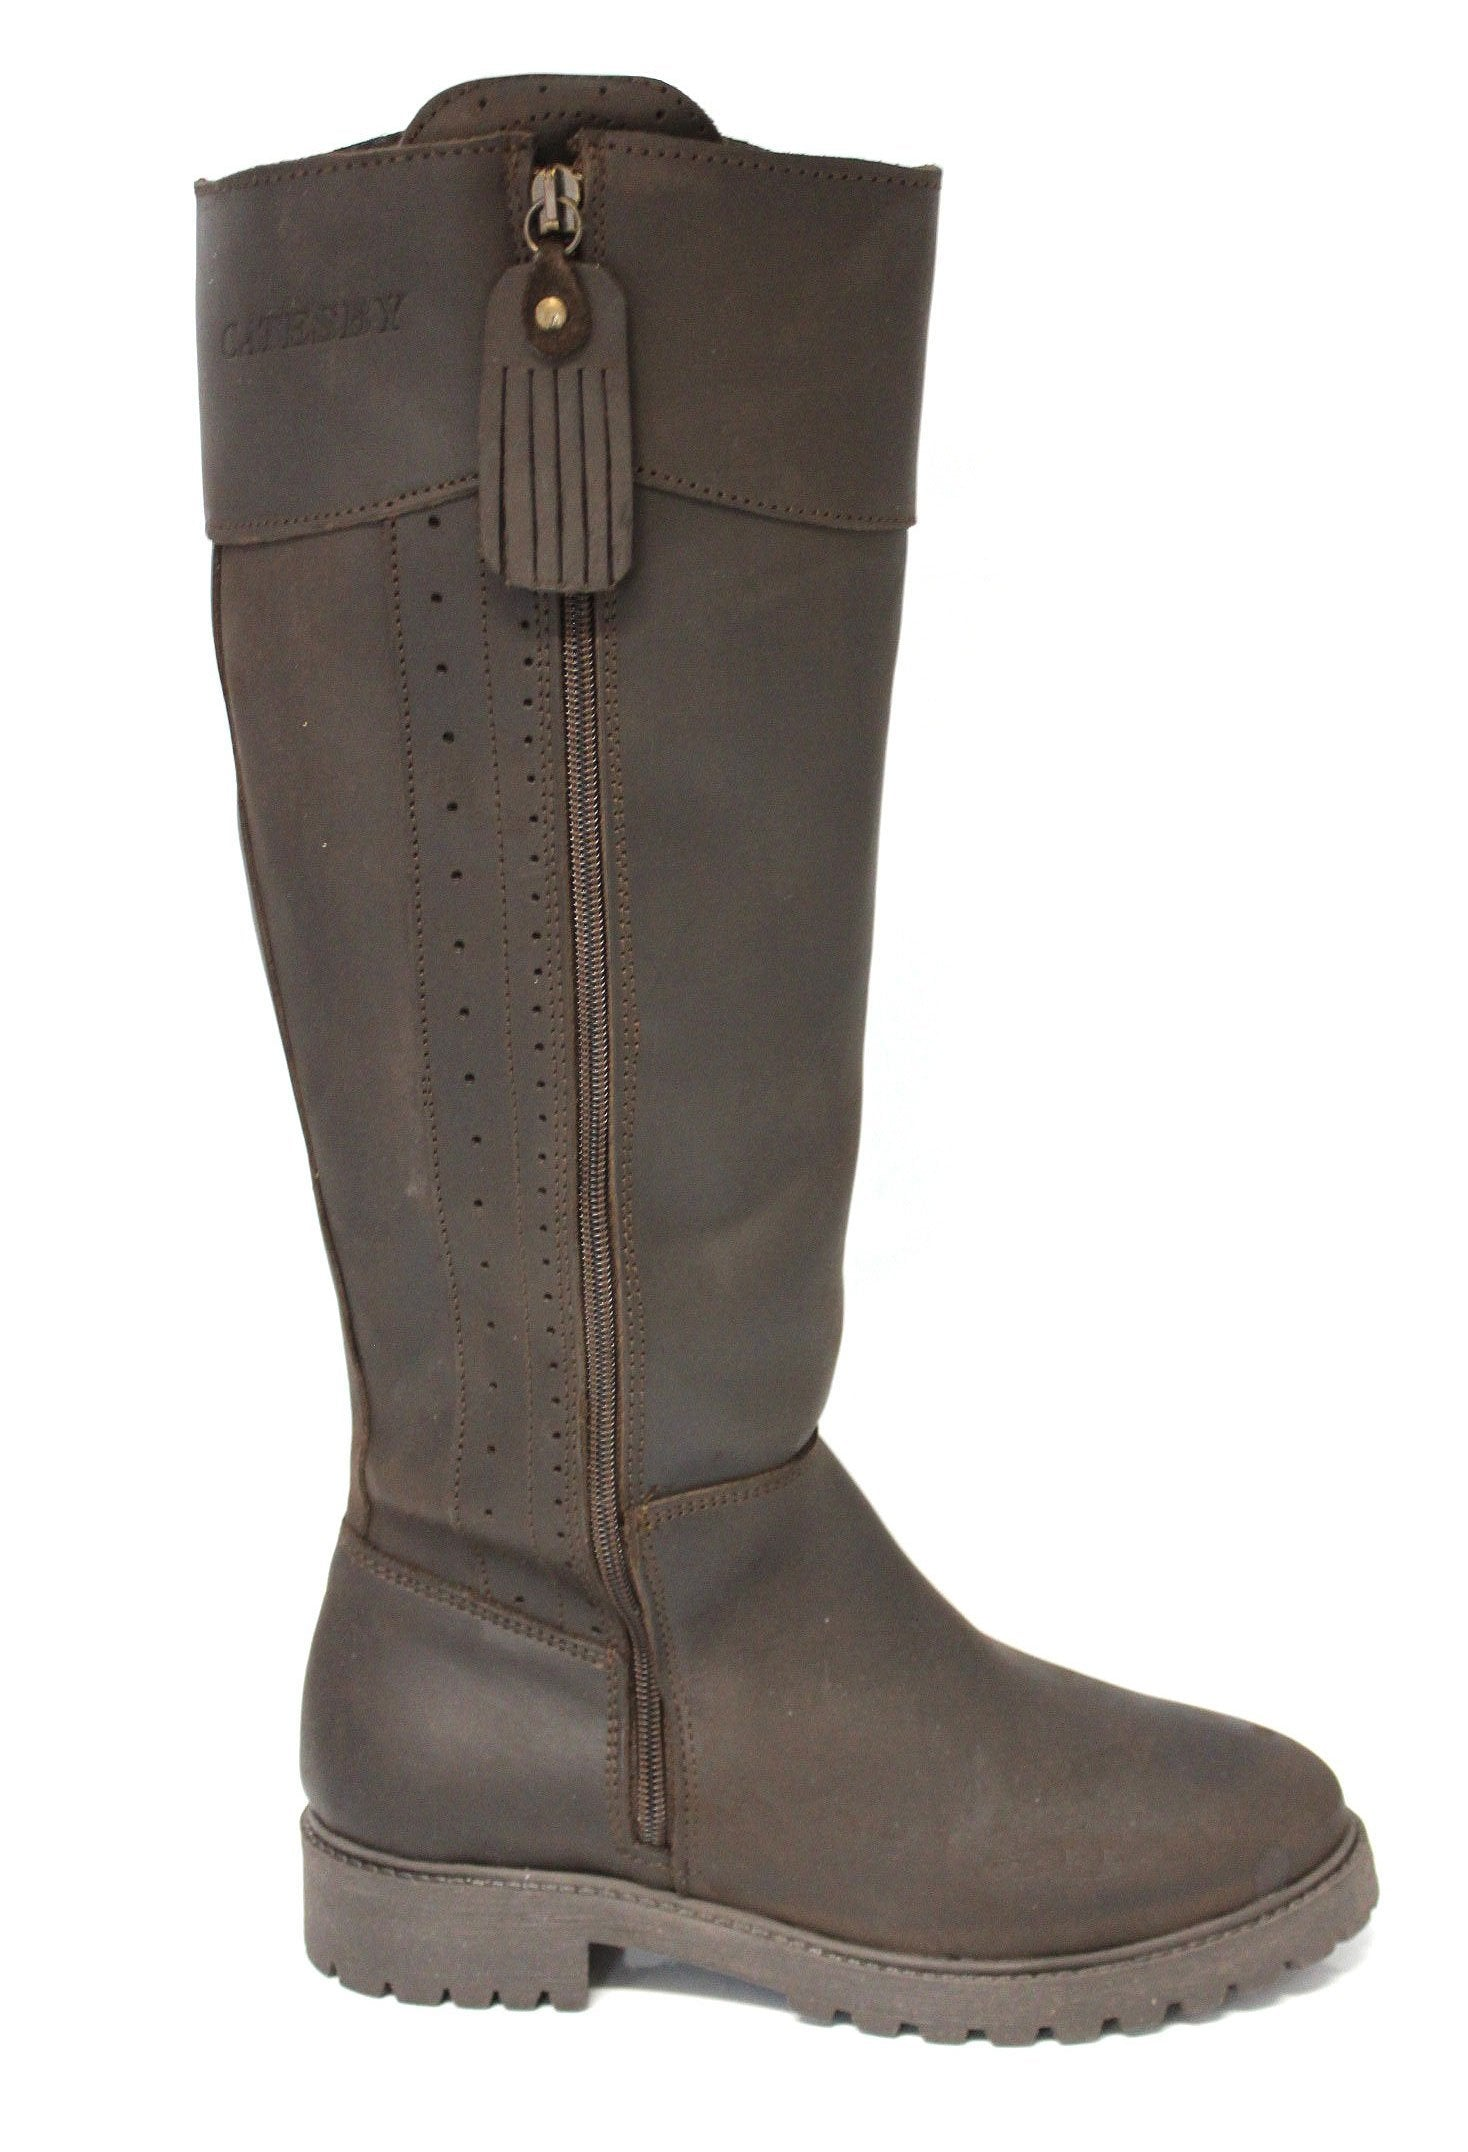 Catesby Fawsley High Leg Leather Country Boots